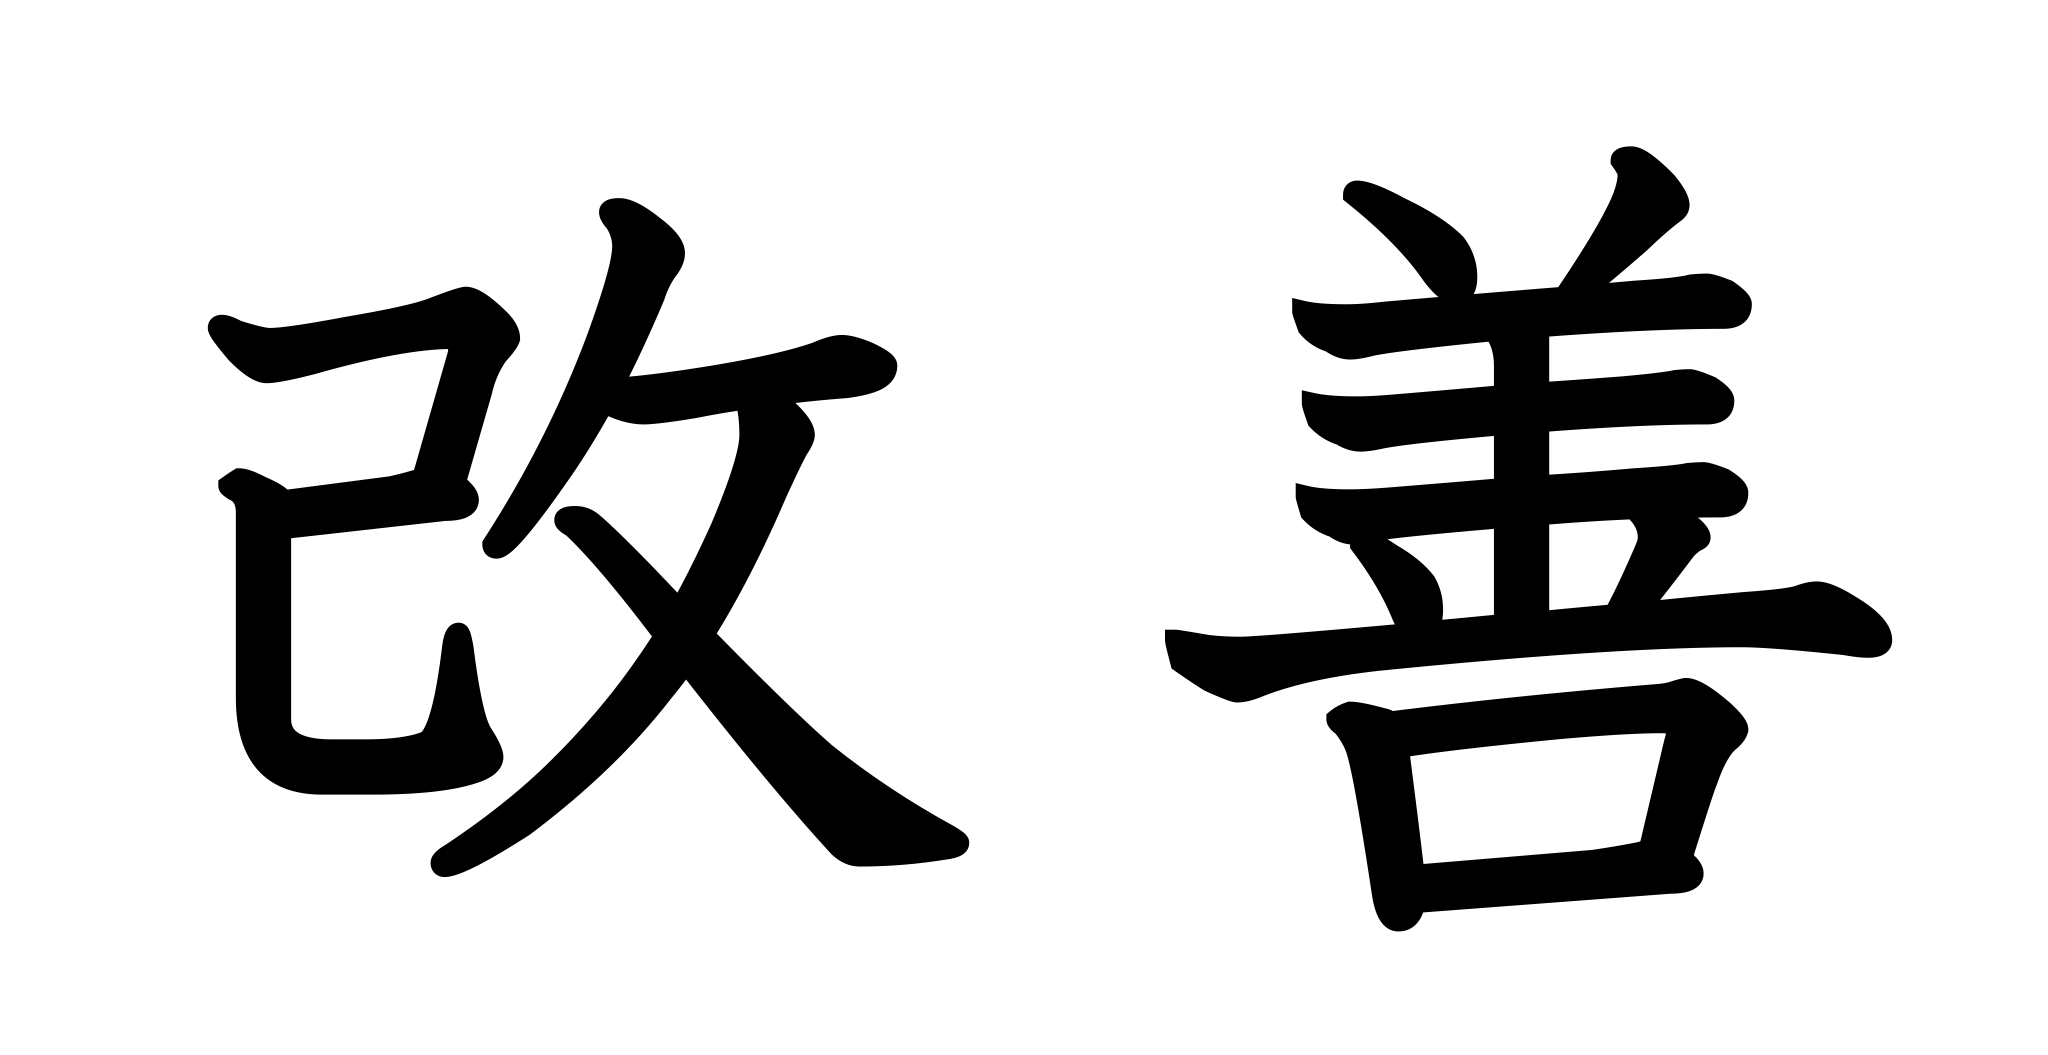 Kaizen: Much stronger if gamified